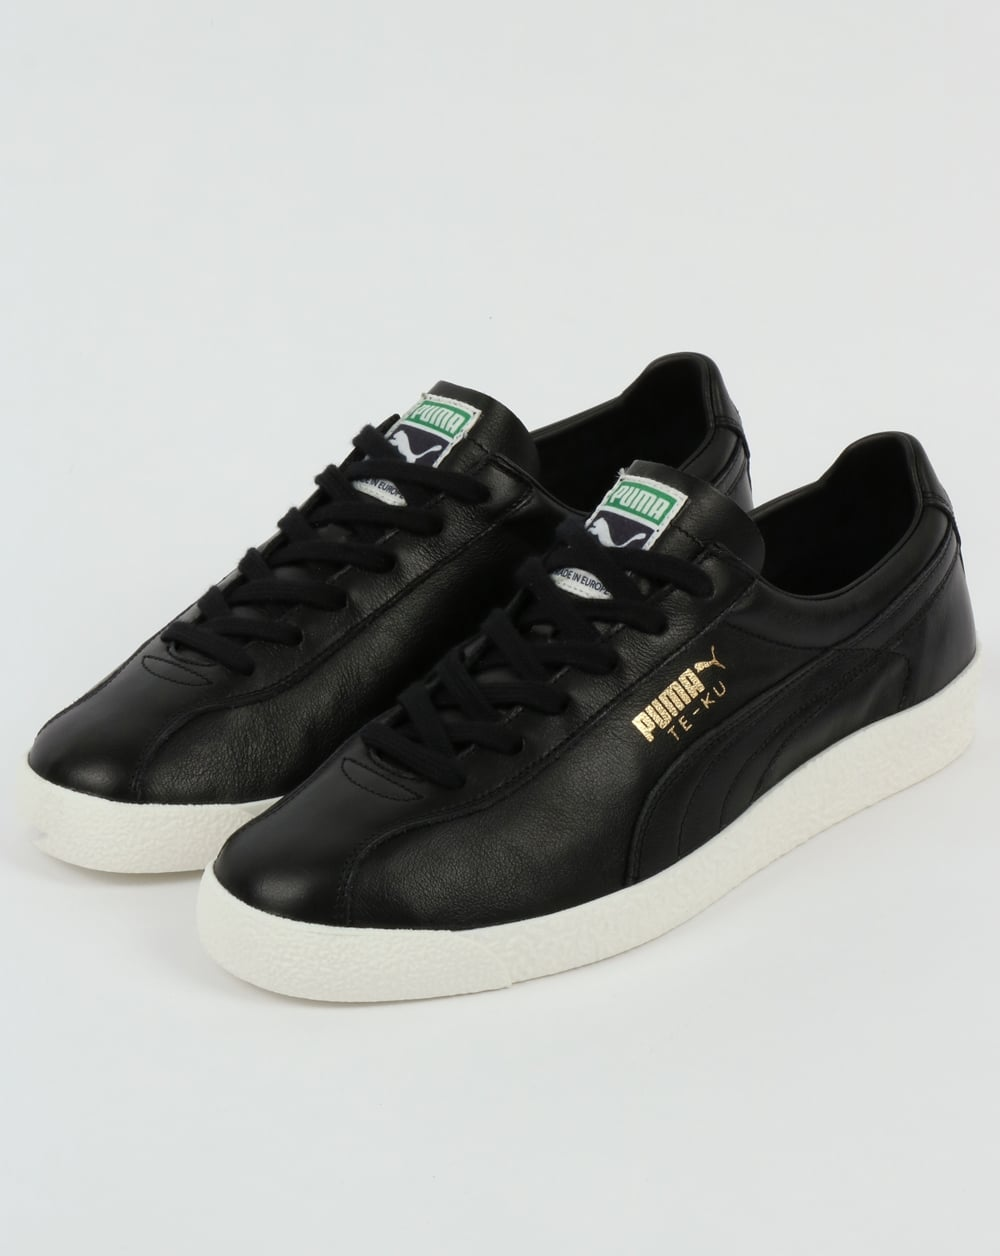 Puma Te-ku Core Trainers Black 4368853b4